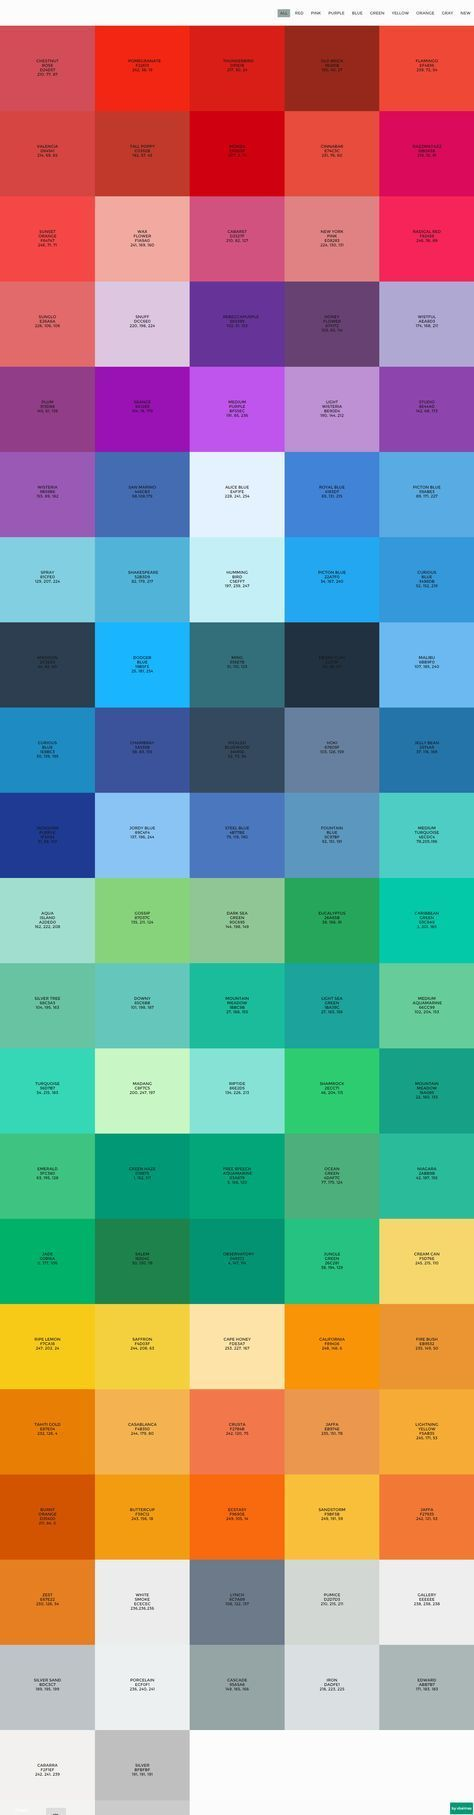 Color picker online upload image - Online Color Picker And Get All Shades And Color Codes